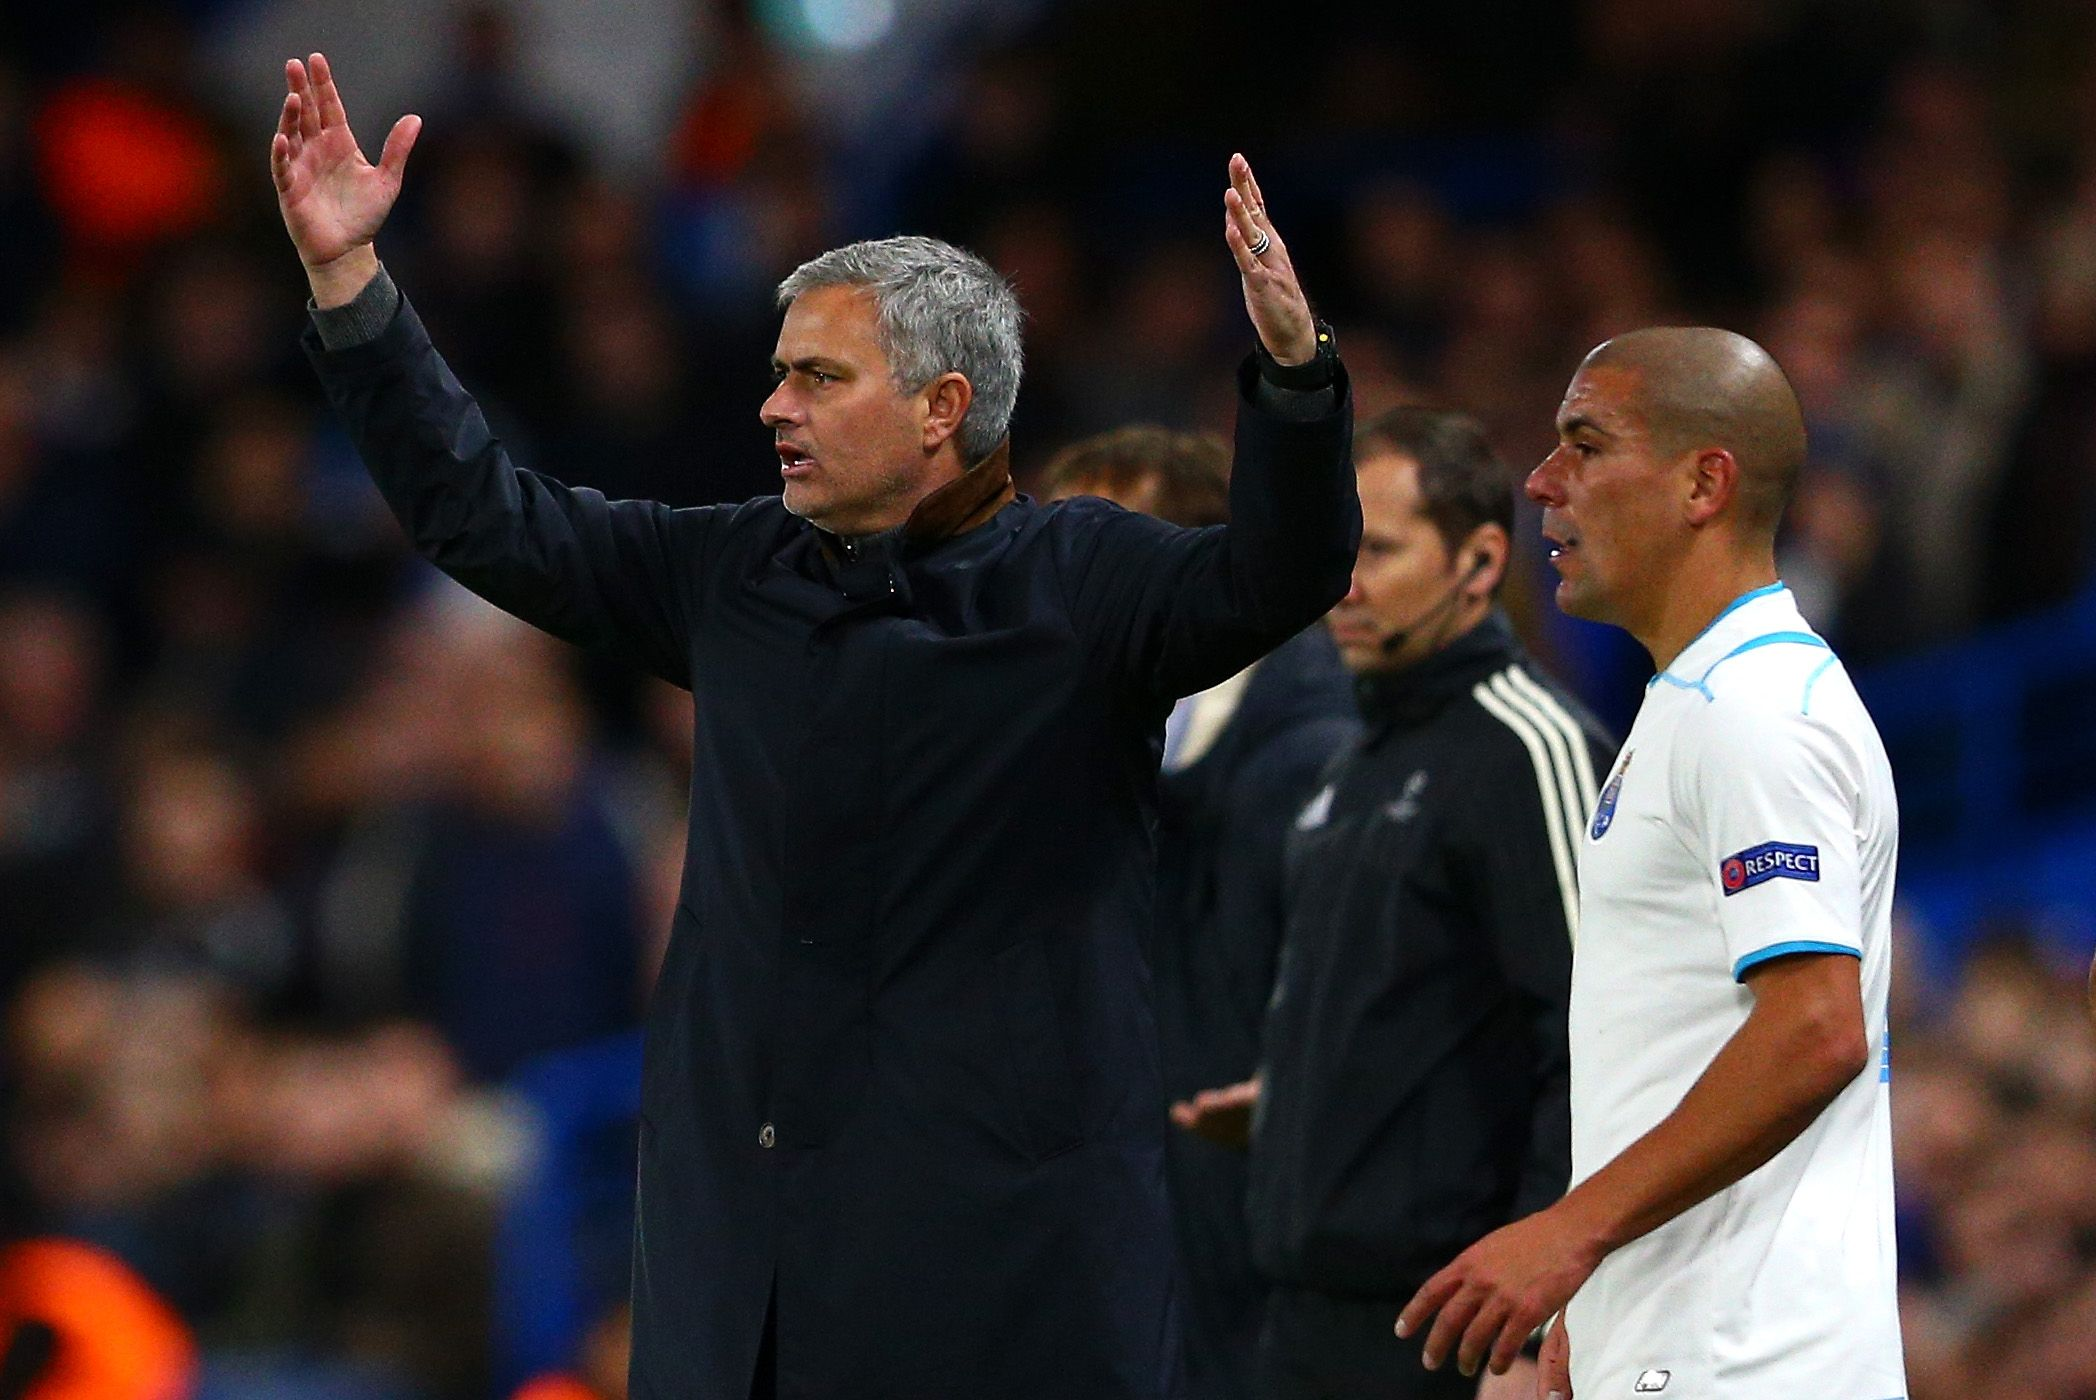 Jose Mourinho, left, has been out of work since leaving Chelsea in December.